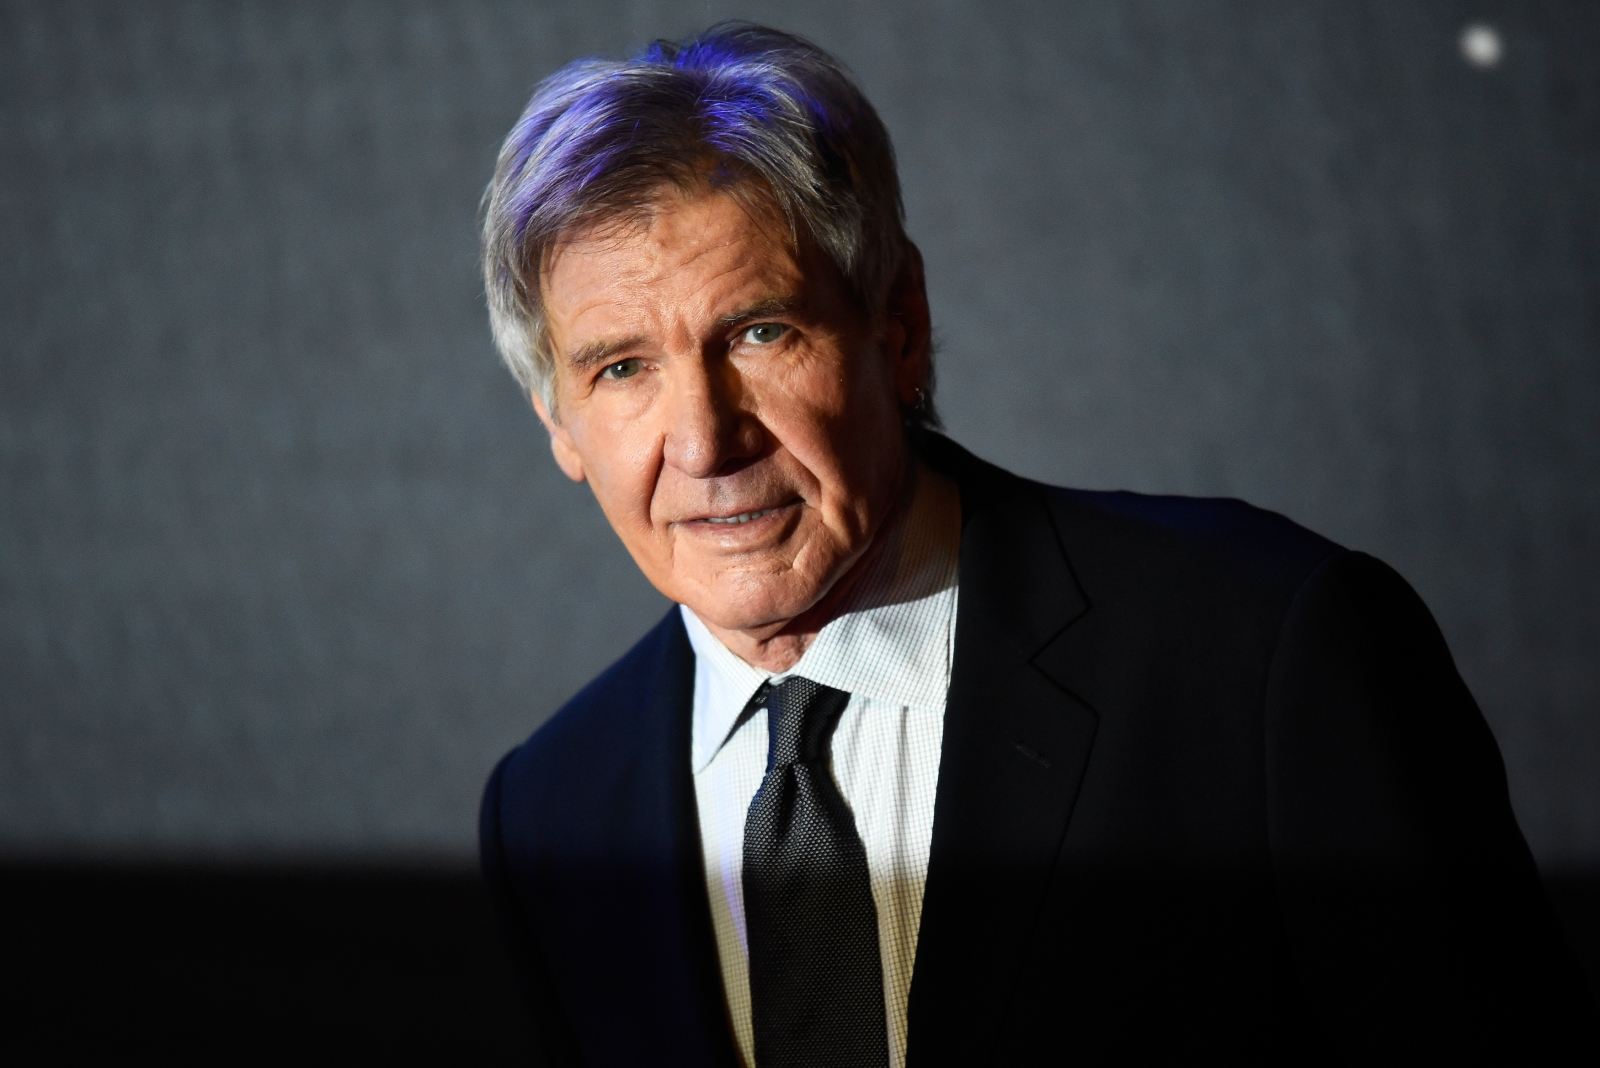 Harrison Ford helps out driver who veered off freeway, crashed